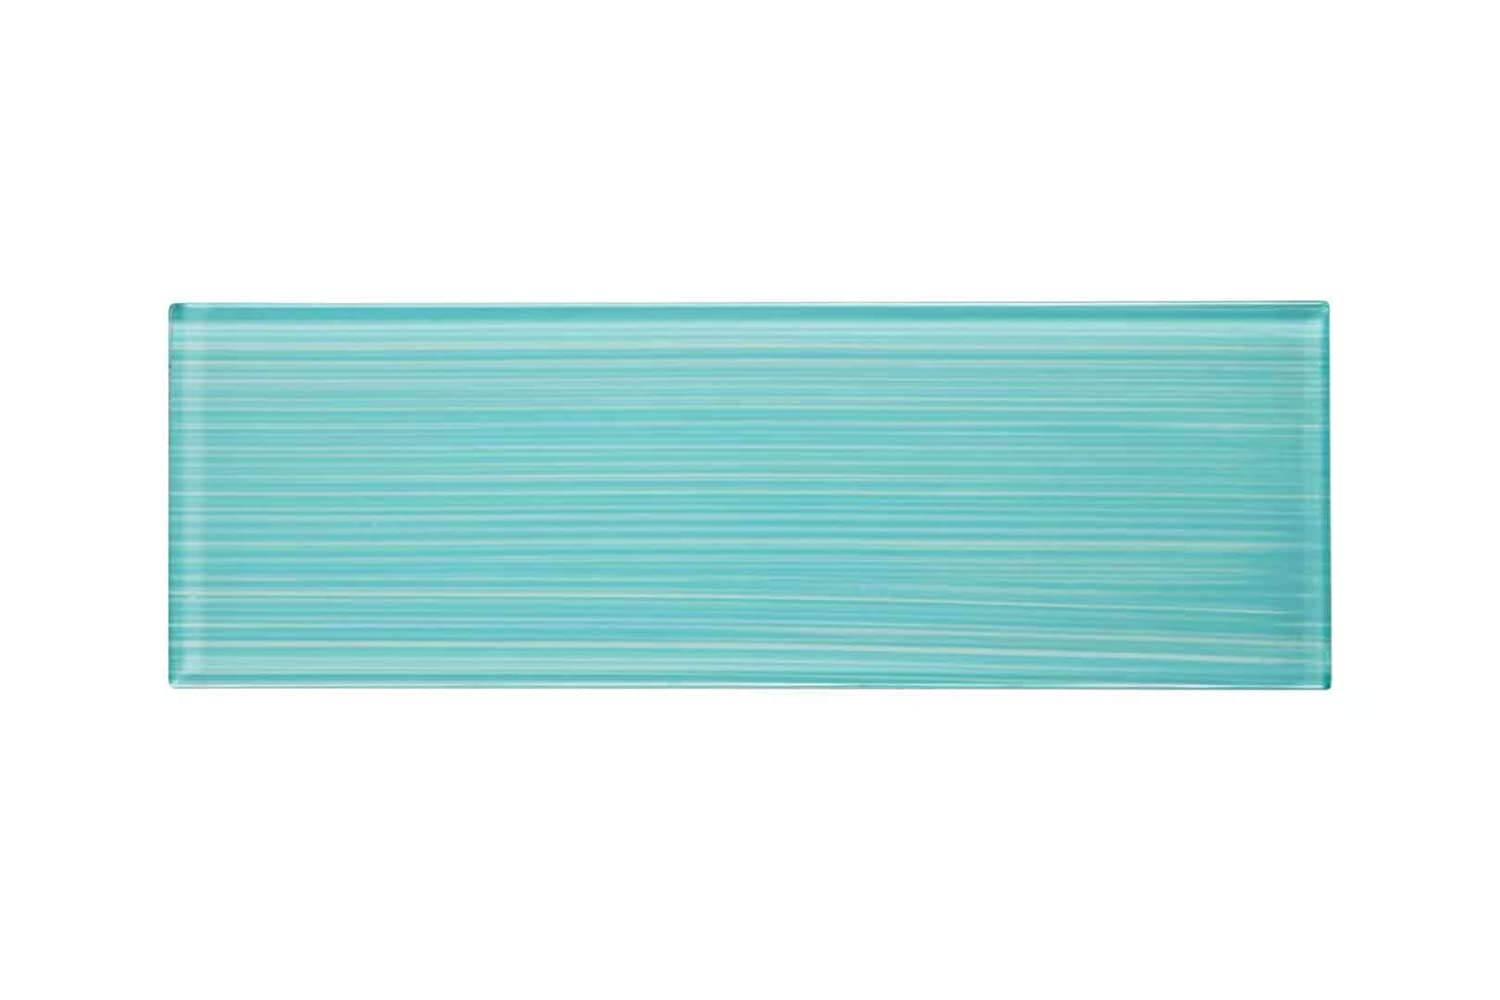 Glass Subway Backsplash Tile Bambu Hand Painted Series for Kitchen and Bathroom by WS Tiles 3 x 6 Mosaic 5 SqFt, Sky Blue WST-26CH